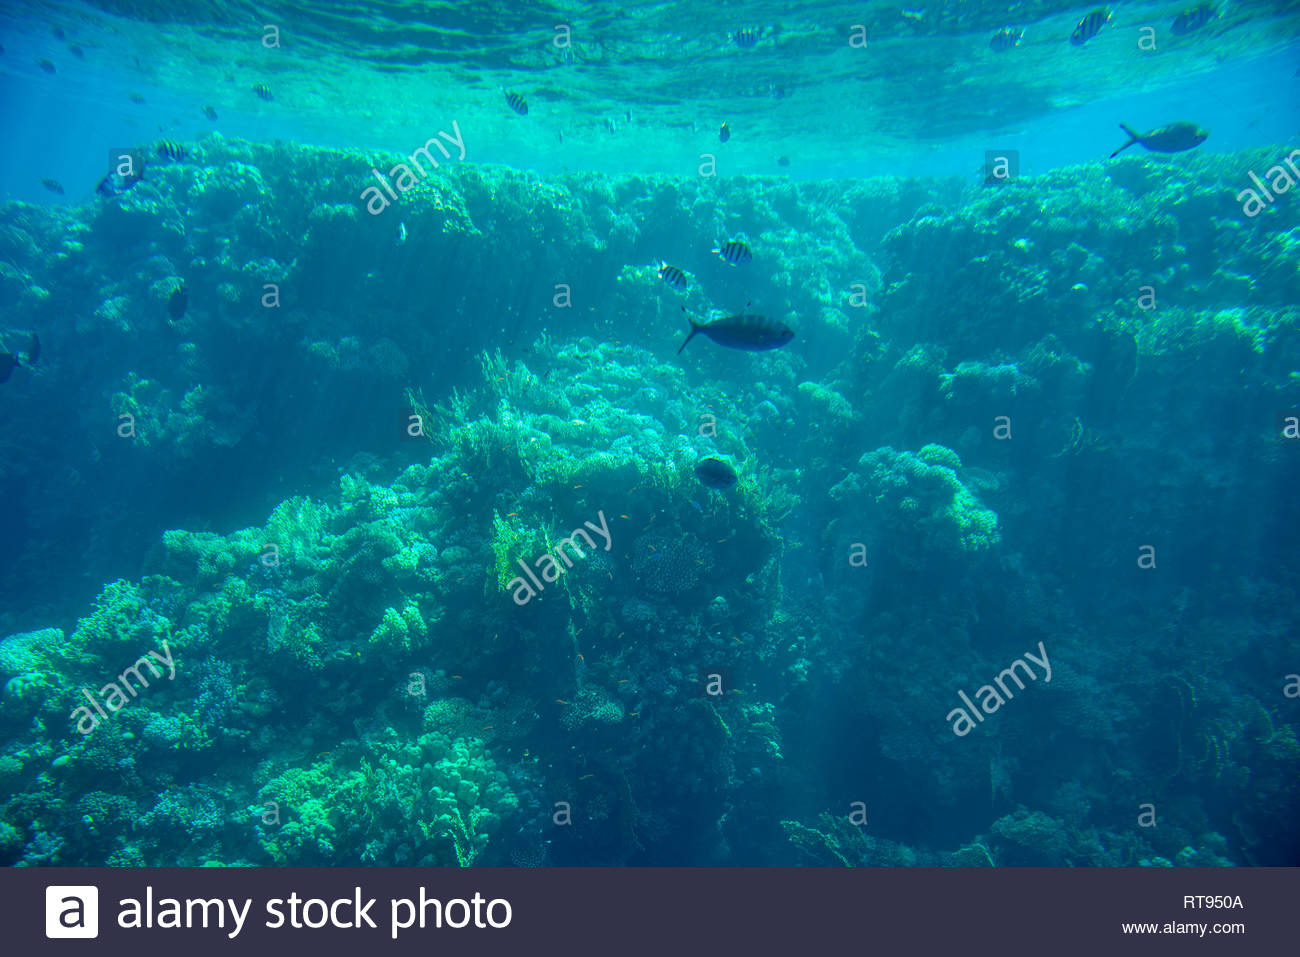 Abstract Aquatic Deep Seabed Underwater Background Stock Photo 1300x957